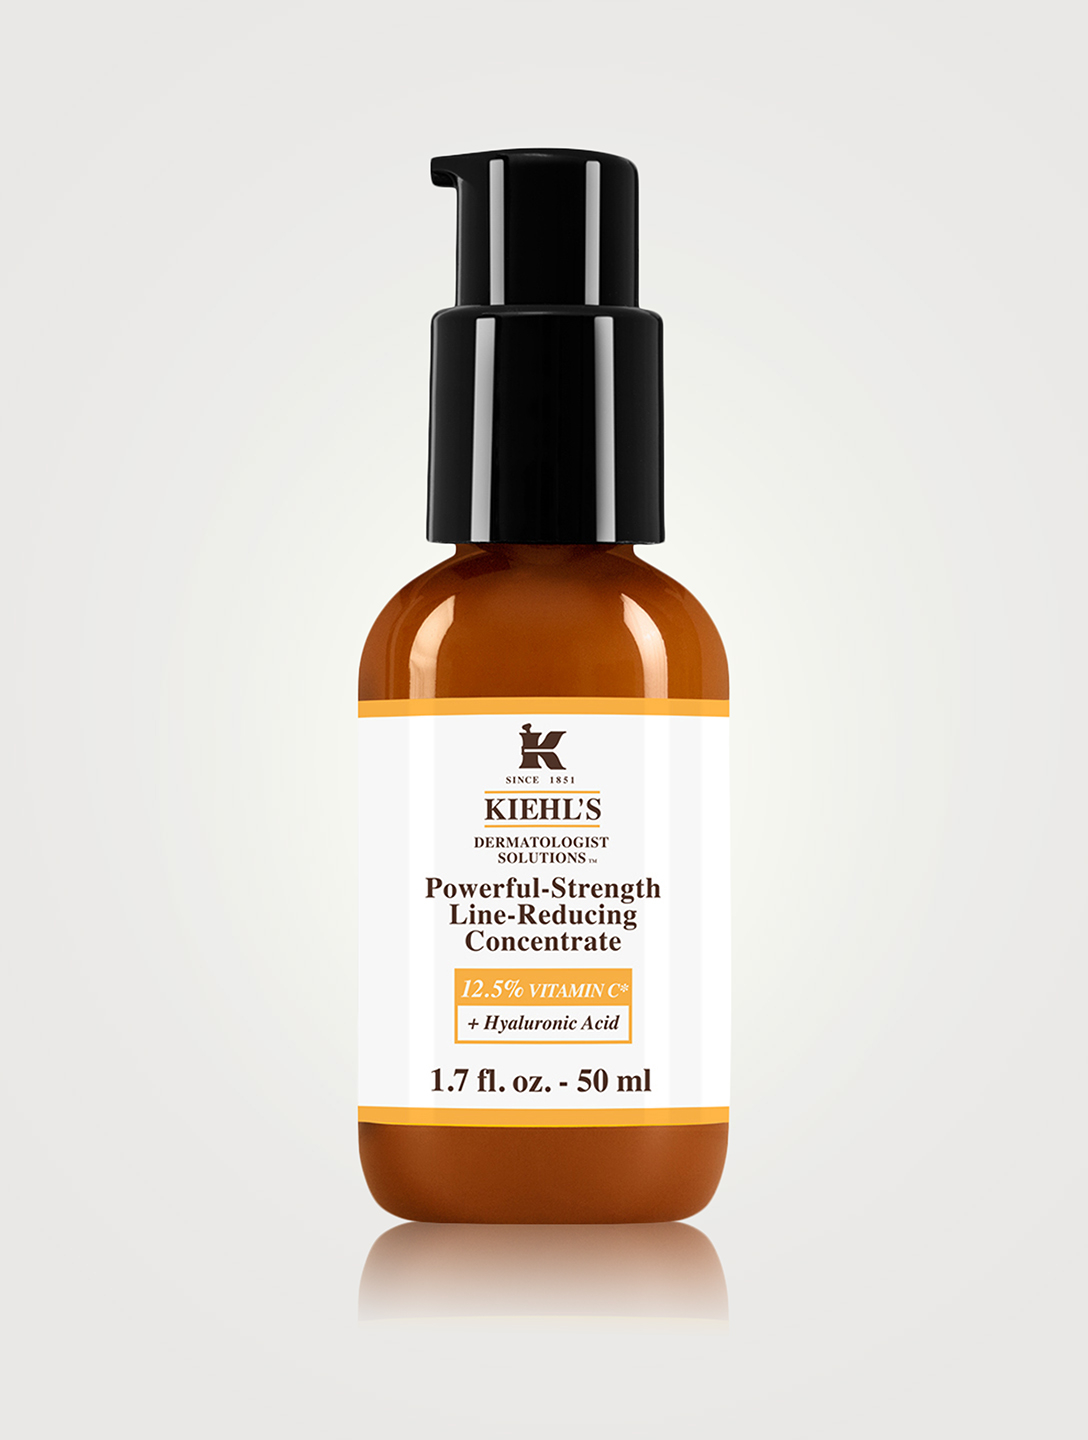 KIEHL'S Powerful-Strength Line-Reducing Concentrate Beauty